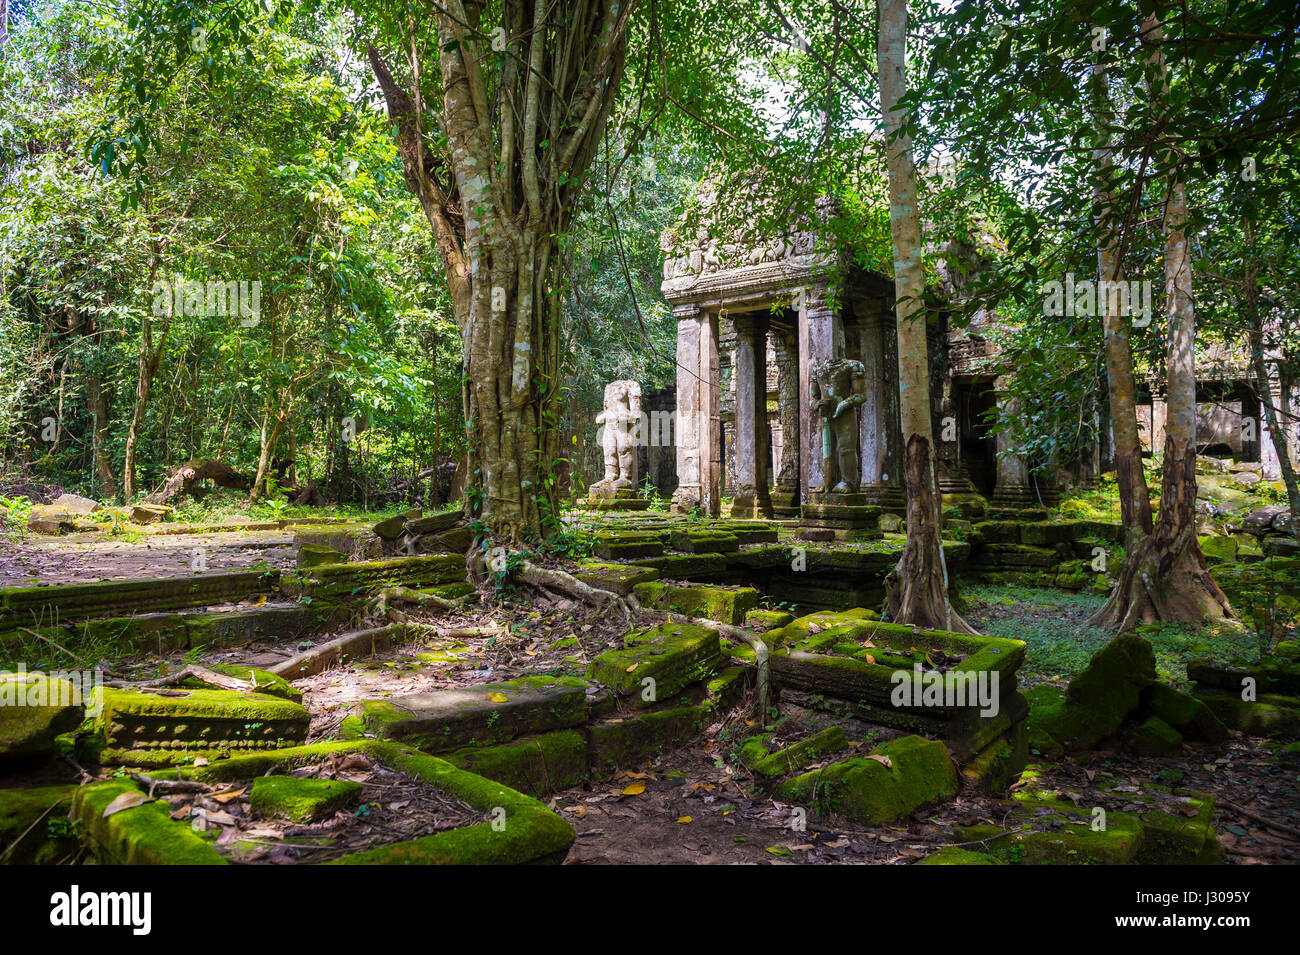 Scenic view of the jungle overtaking the stone temple complex of Angkor Wat, Cambodia - Stock Image